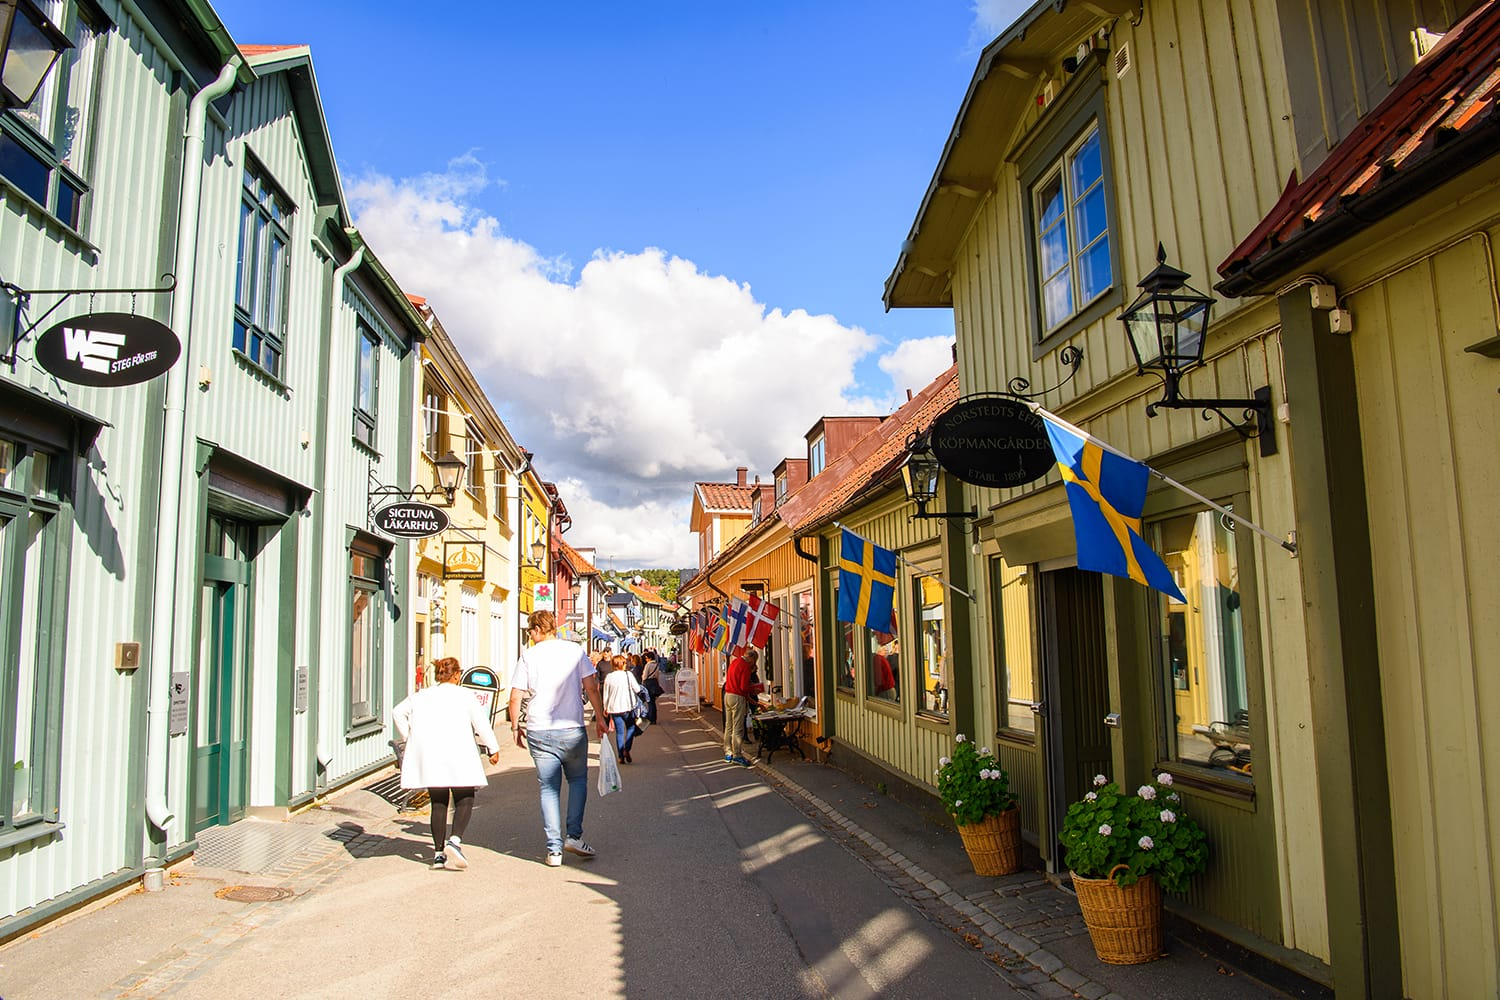 Architecture of Sigtuna, the oldest town in Sweden, having been founded in 980